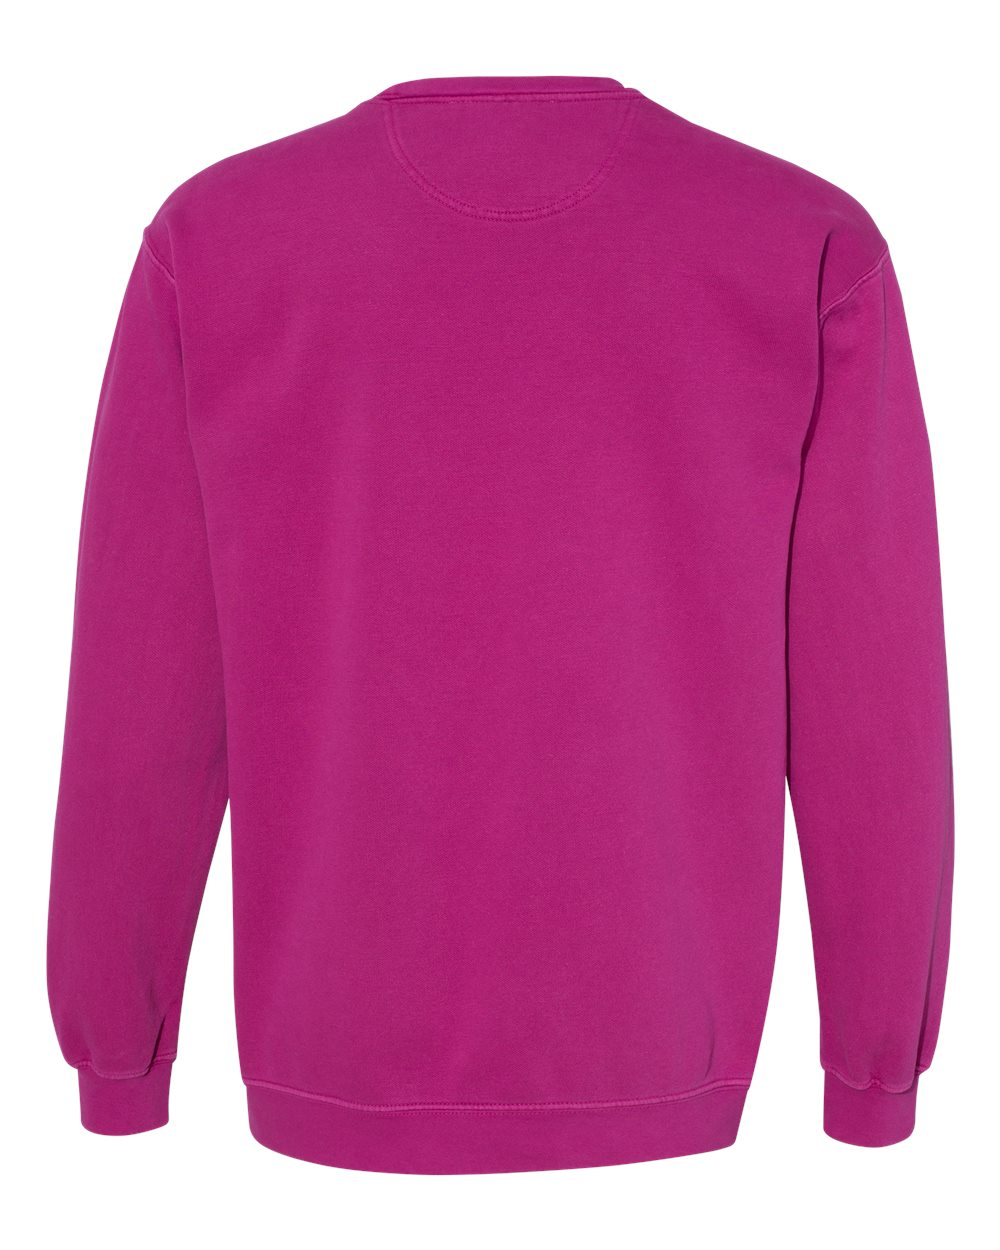 Comfort-Colors-Mens-Garment-Dyed-Ringspun-Crewneck-Sweatshirt-1566-up-to-3XL miniature 13